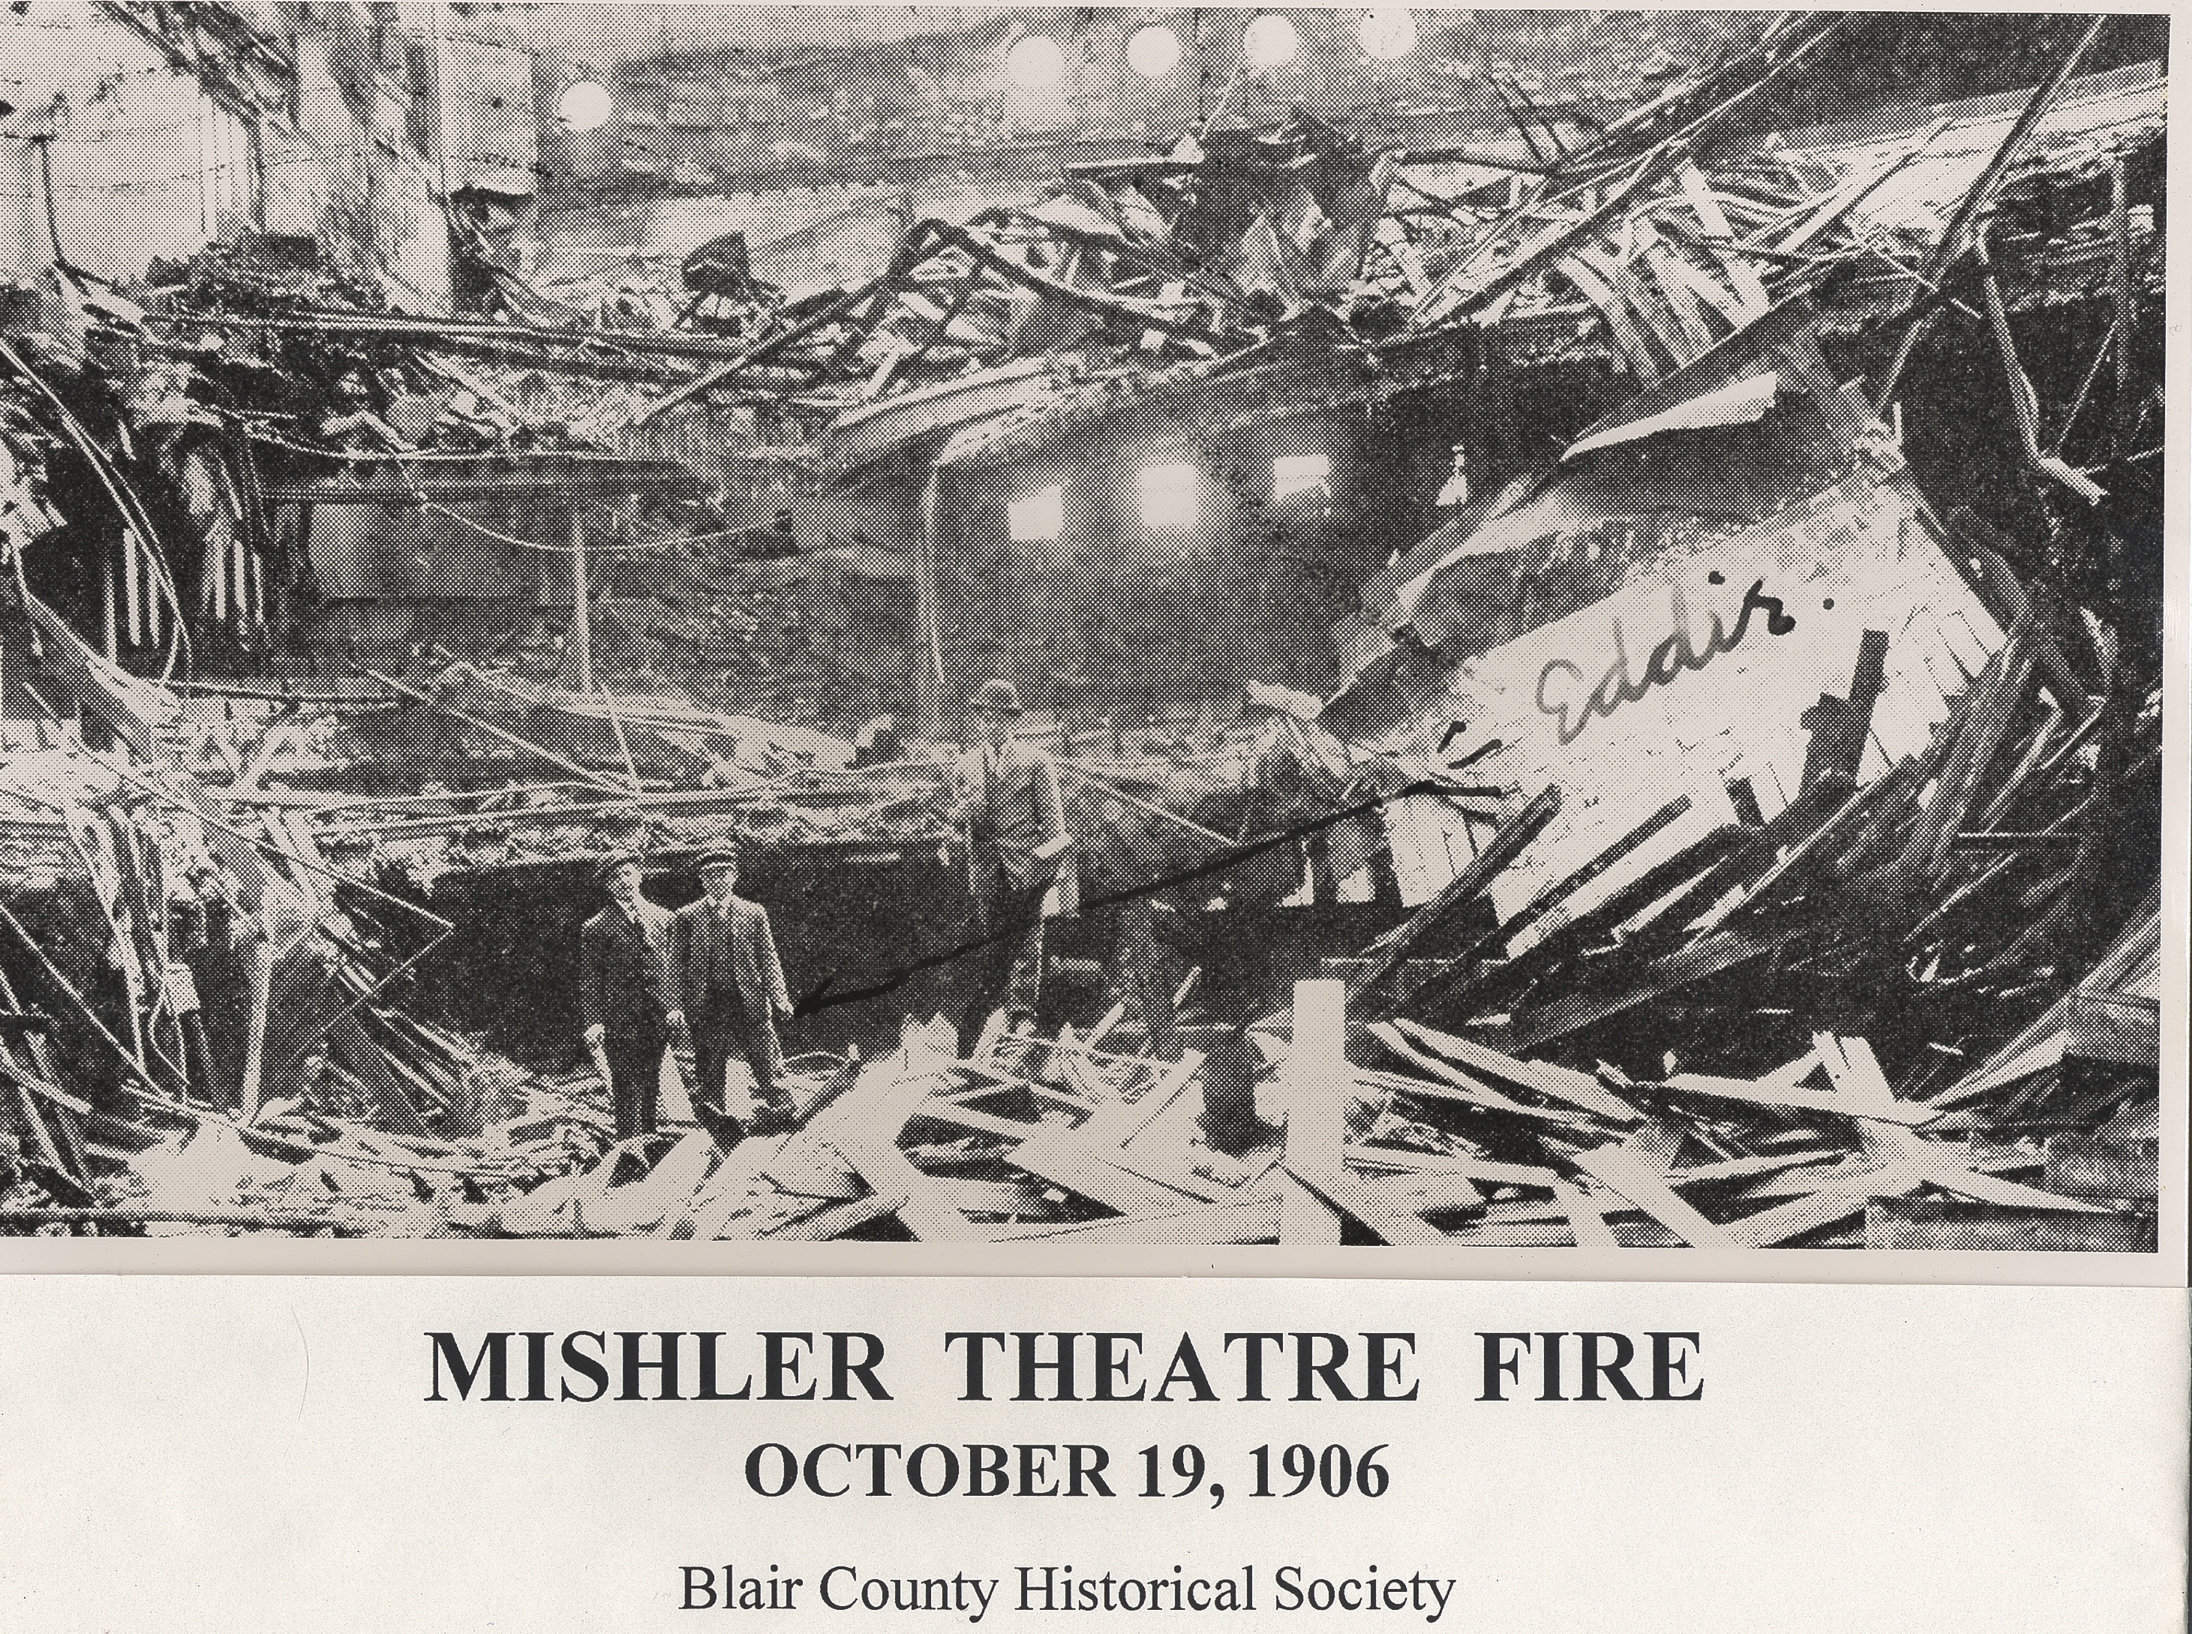 The Mishler Theatre shortly after the fire